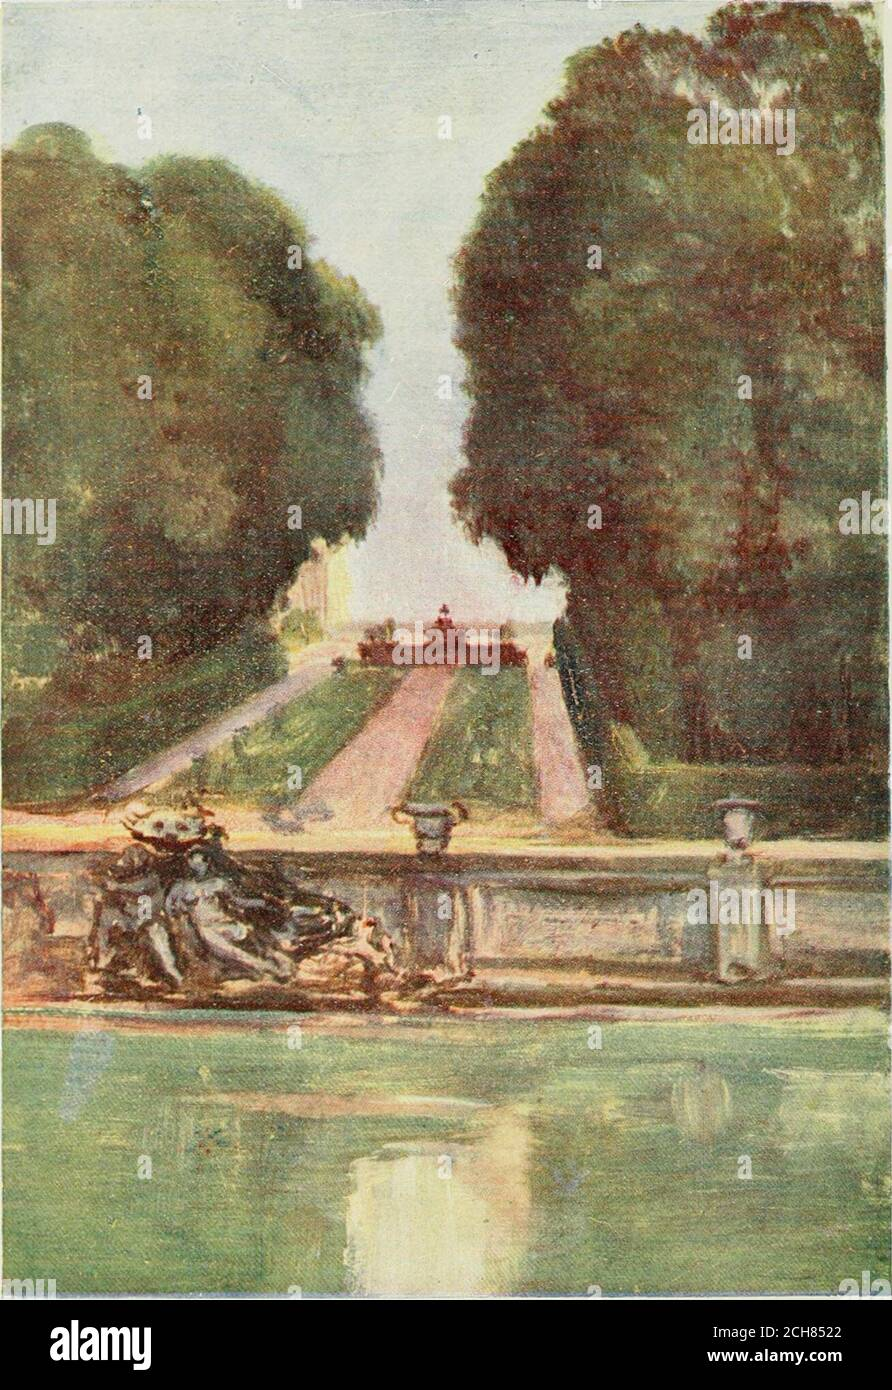 . Paris and its story, by T. Okey; illustrated by Katherine Kimball & O. F. M. Ward . NOTRE DAME, SOUTH SIDE. Chanoinesse, and at No. 9 Quai aux Fleurs an inscriptionmarks the site of the house of Heloise and Abelard. TheRue and Pont dArcole have cleared away the old church ofSt. Landry and the port of that name, where up to thereign of Louis XIII. a market was held, at which foundlingchildren from the hospital on the Parvis could be boughtfor thirty sous. The scandal was abolished by the efforts. Versailles—Bassin de NeptUxNE. THE CITE 283 of the gentle St. Vincent de Paul, Anne of Austriasco Stock Photo